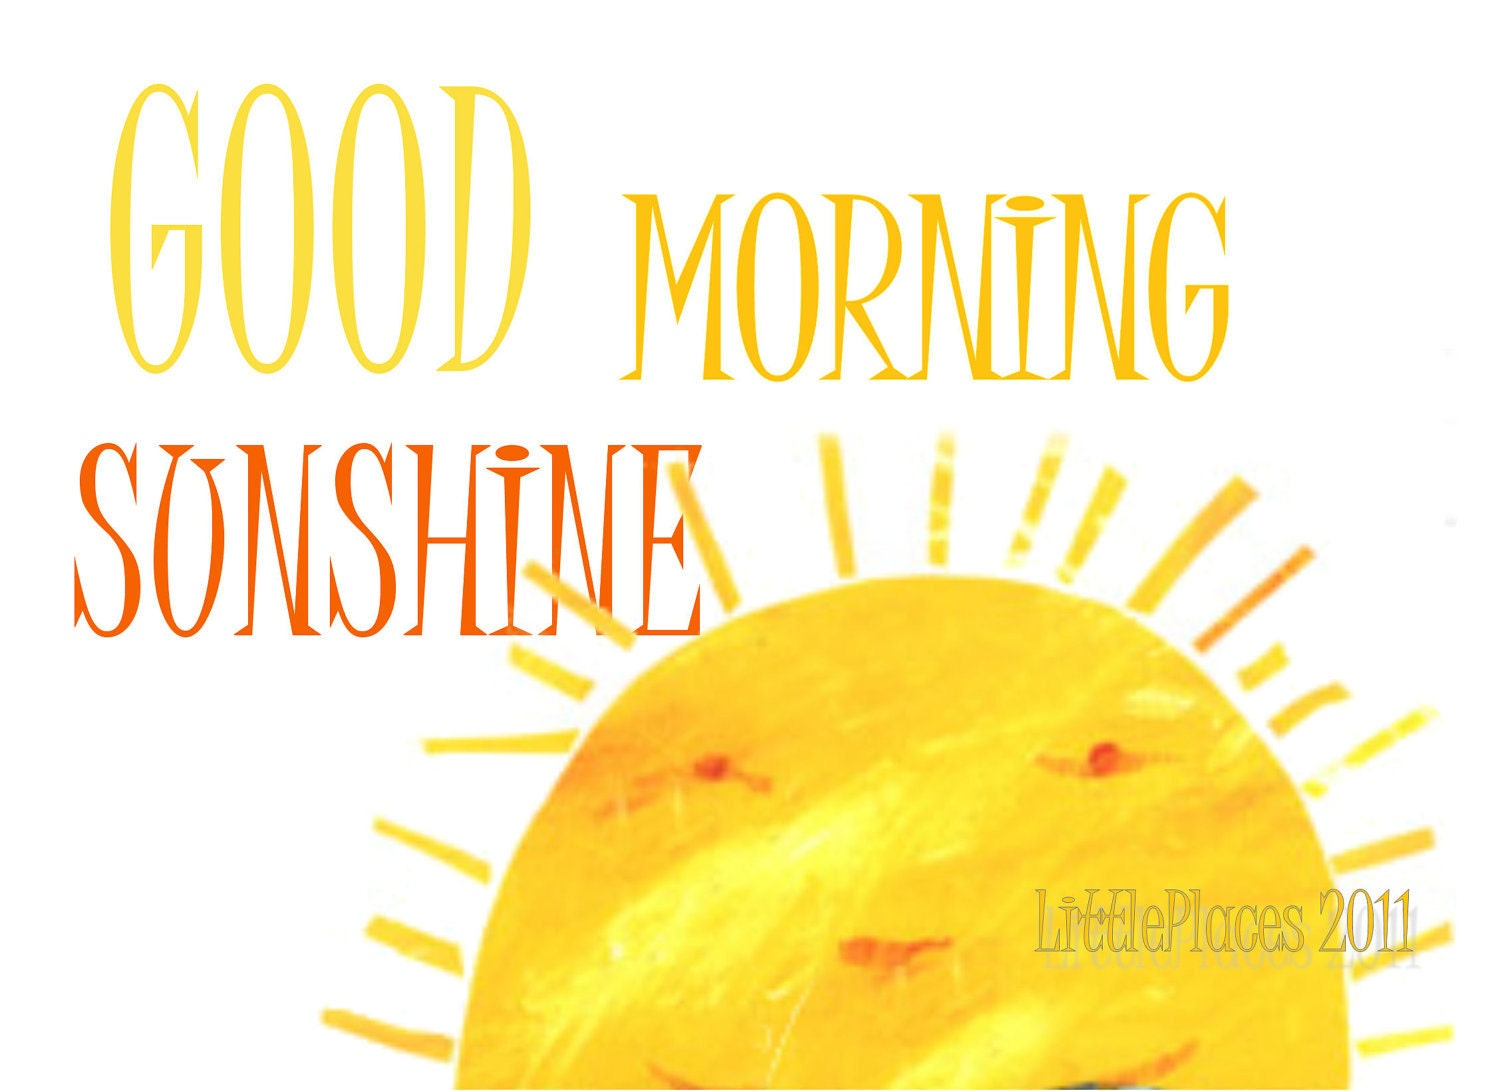 Good Morning Sunshine Letter : Limezinnias design good morning sunshine